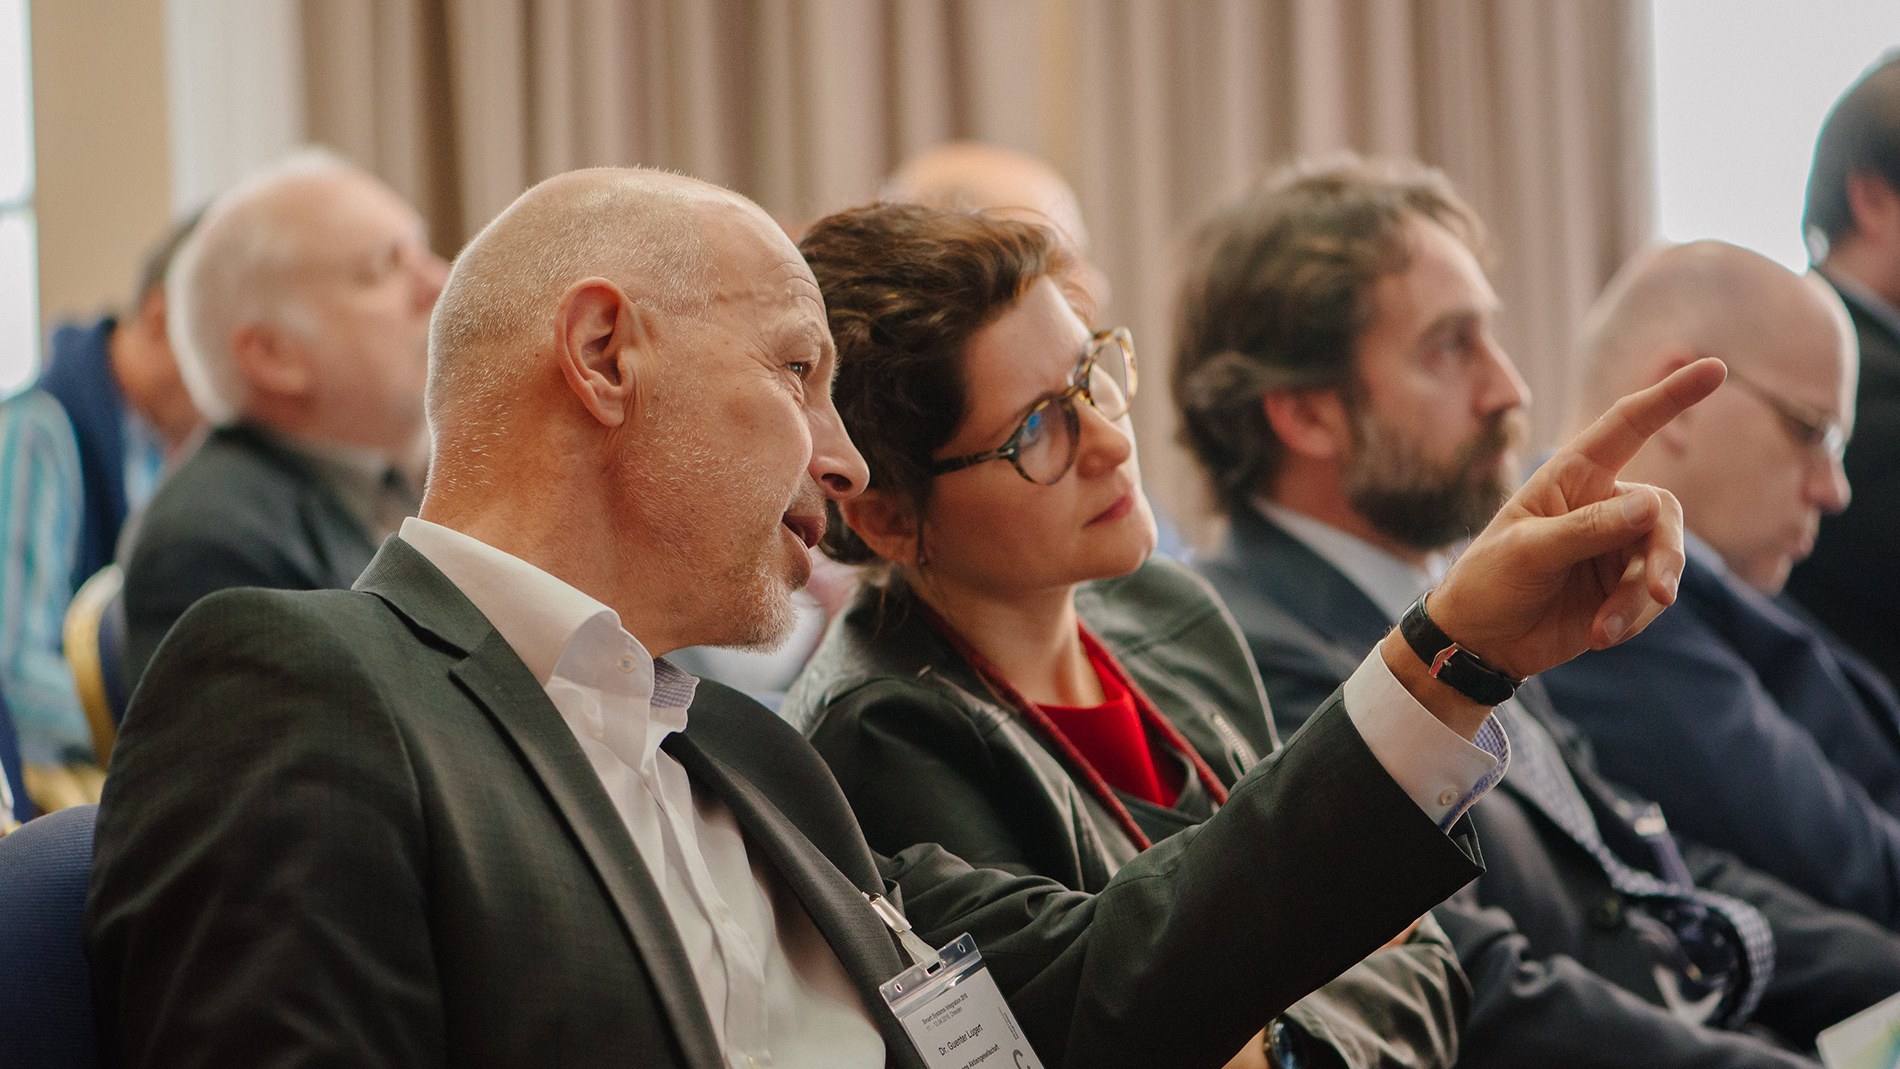 SSI_Conference_Dresden_20180411_029